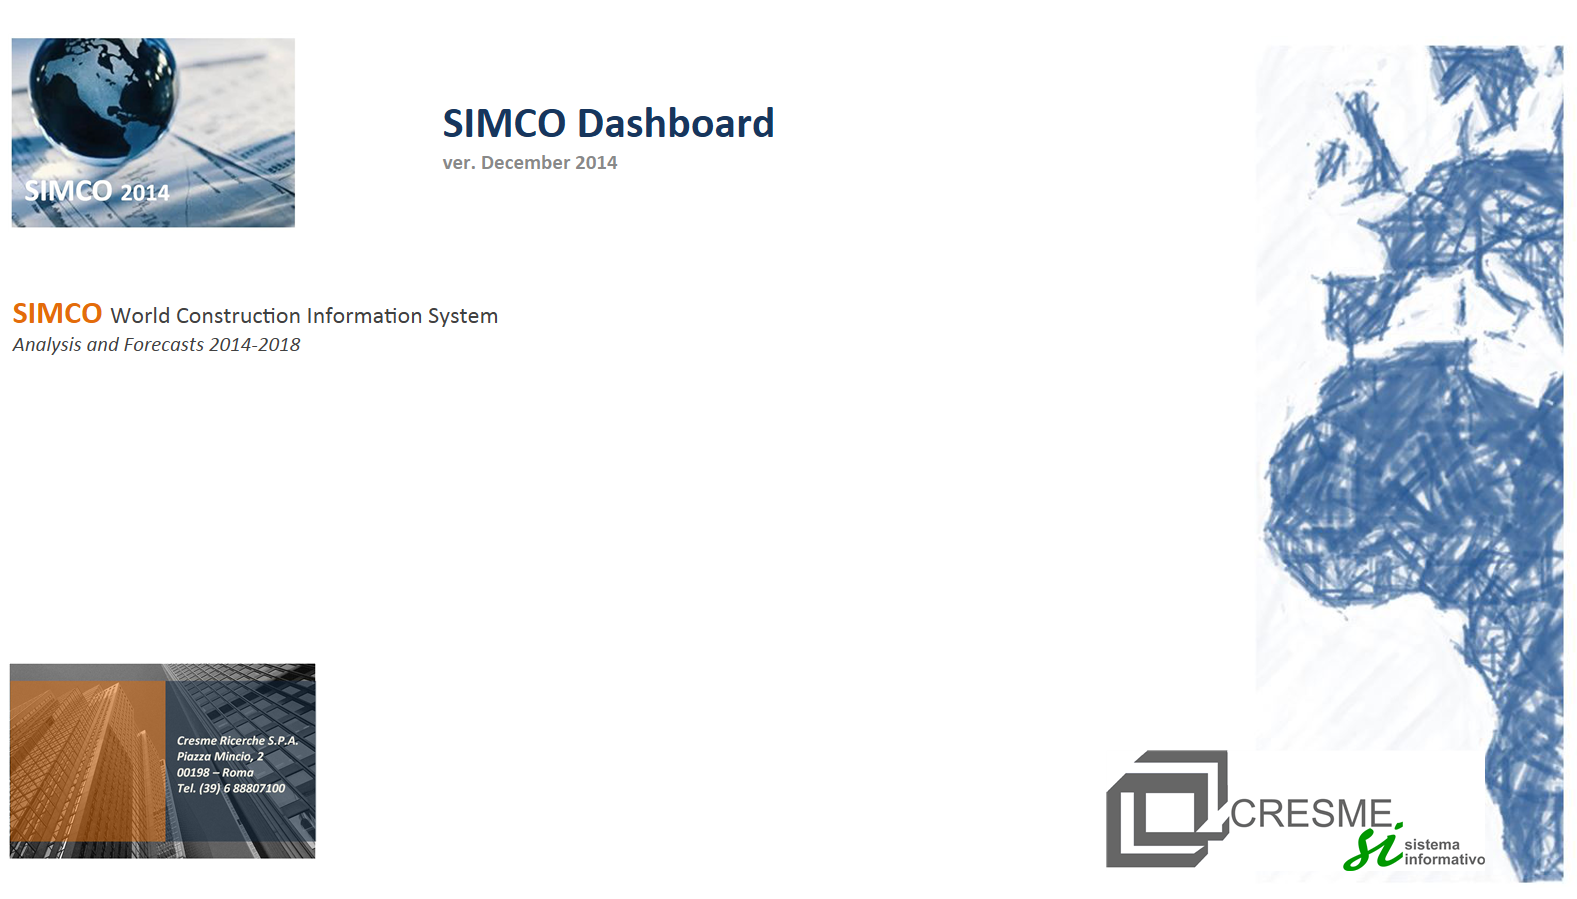 SIMCO dashboard